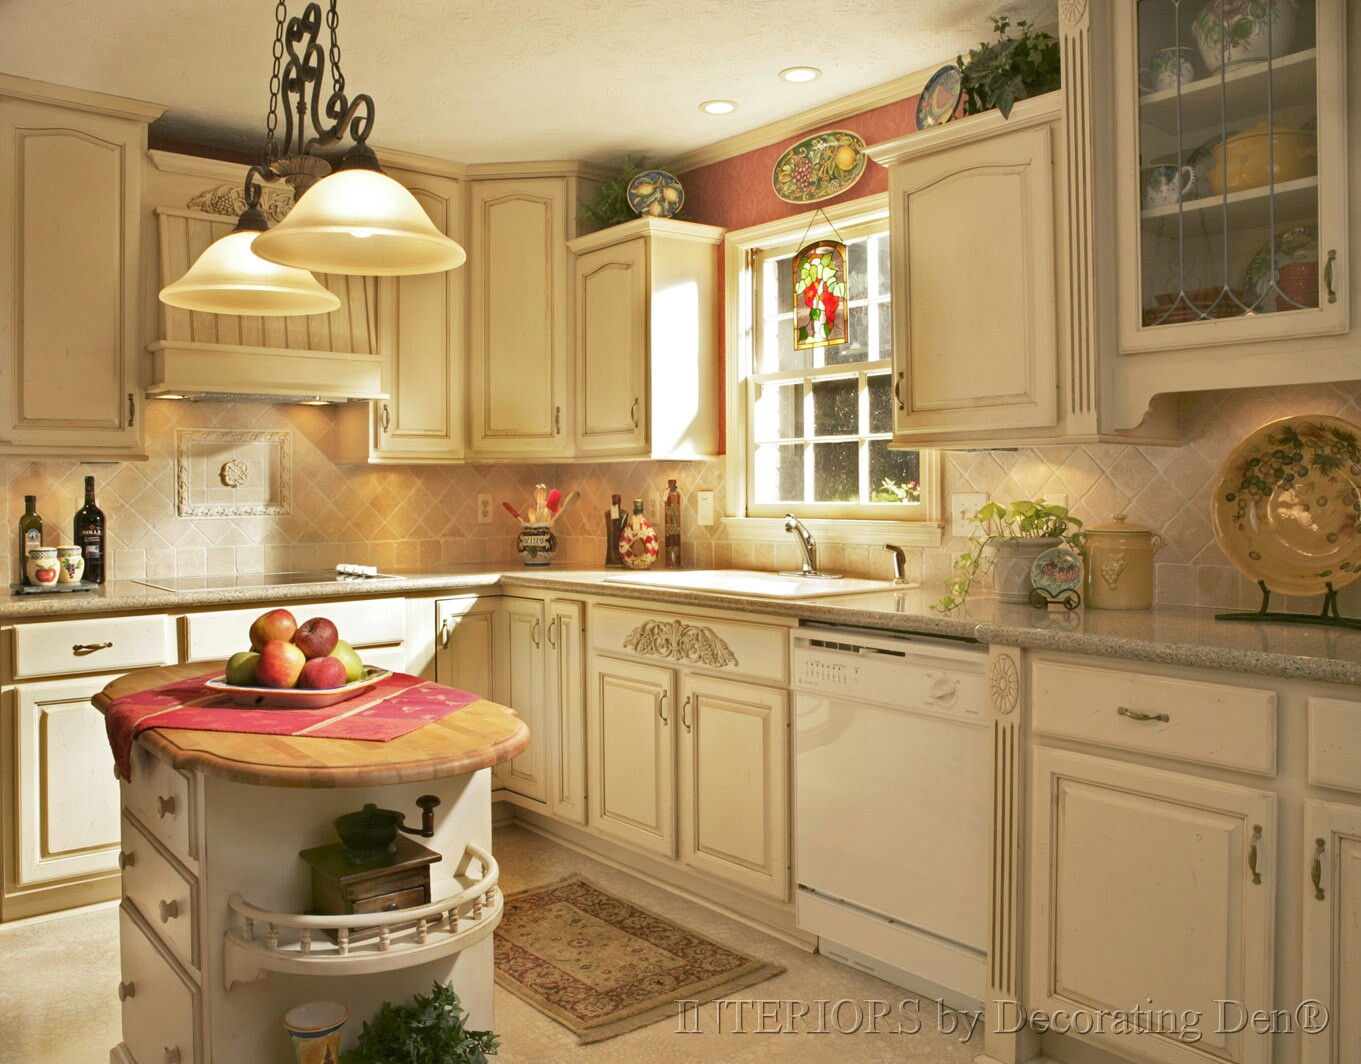 Important kitchen interior design components final article in series how to tie it all - Color schemes for kitchens ...